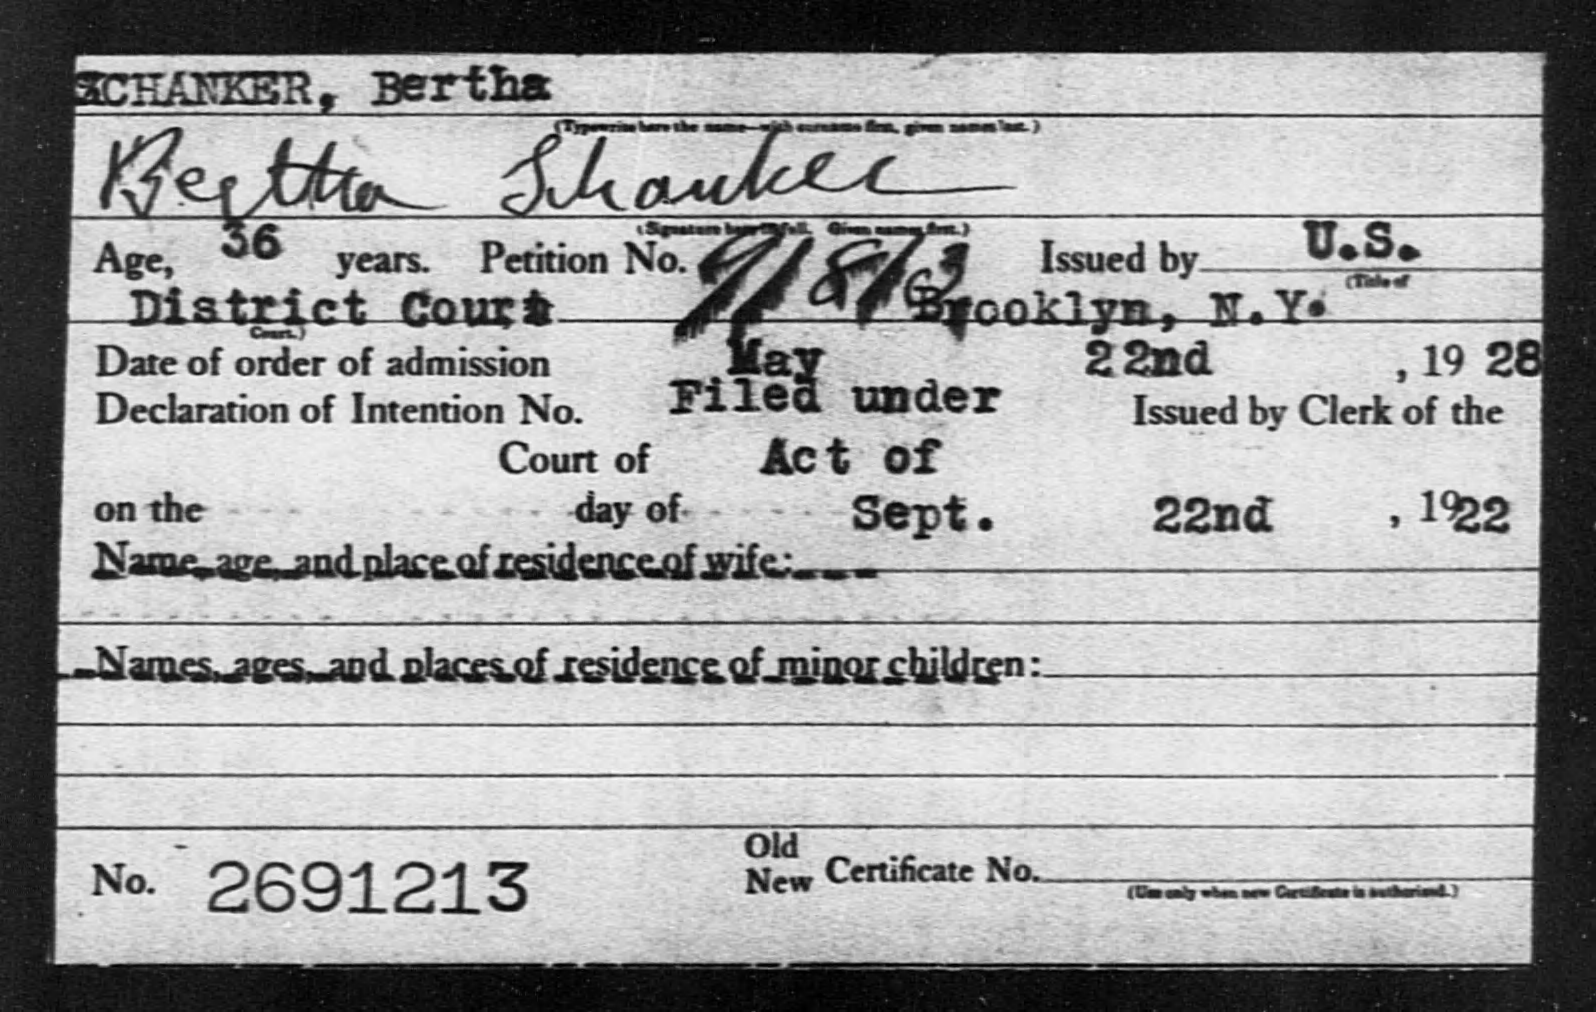 SCHANKER, Bertha - Born: [BLANK], Naturalized: 1928